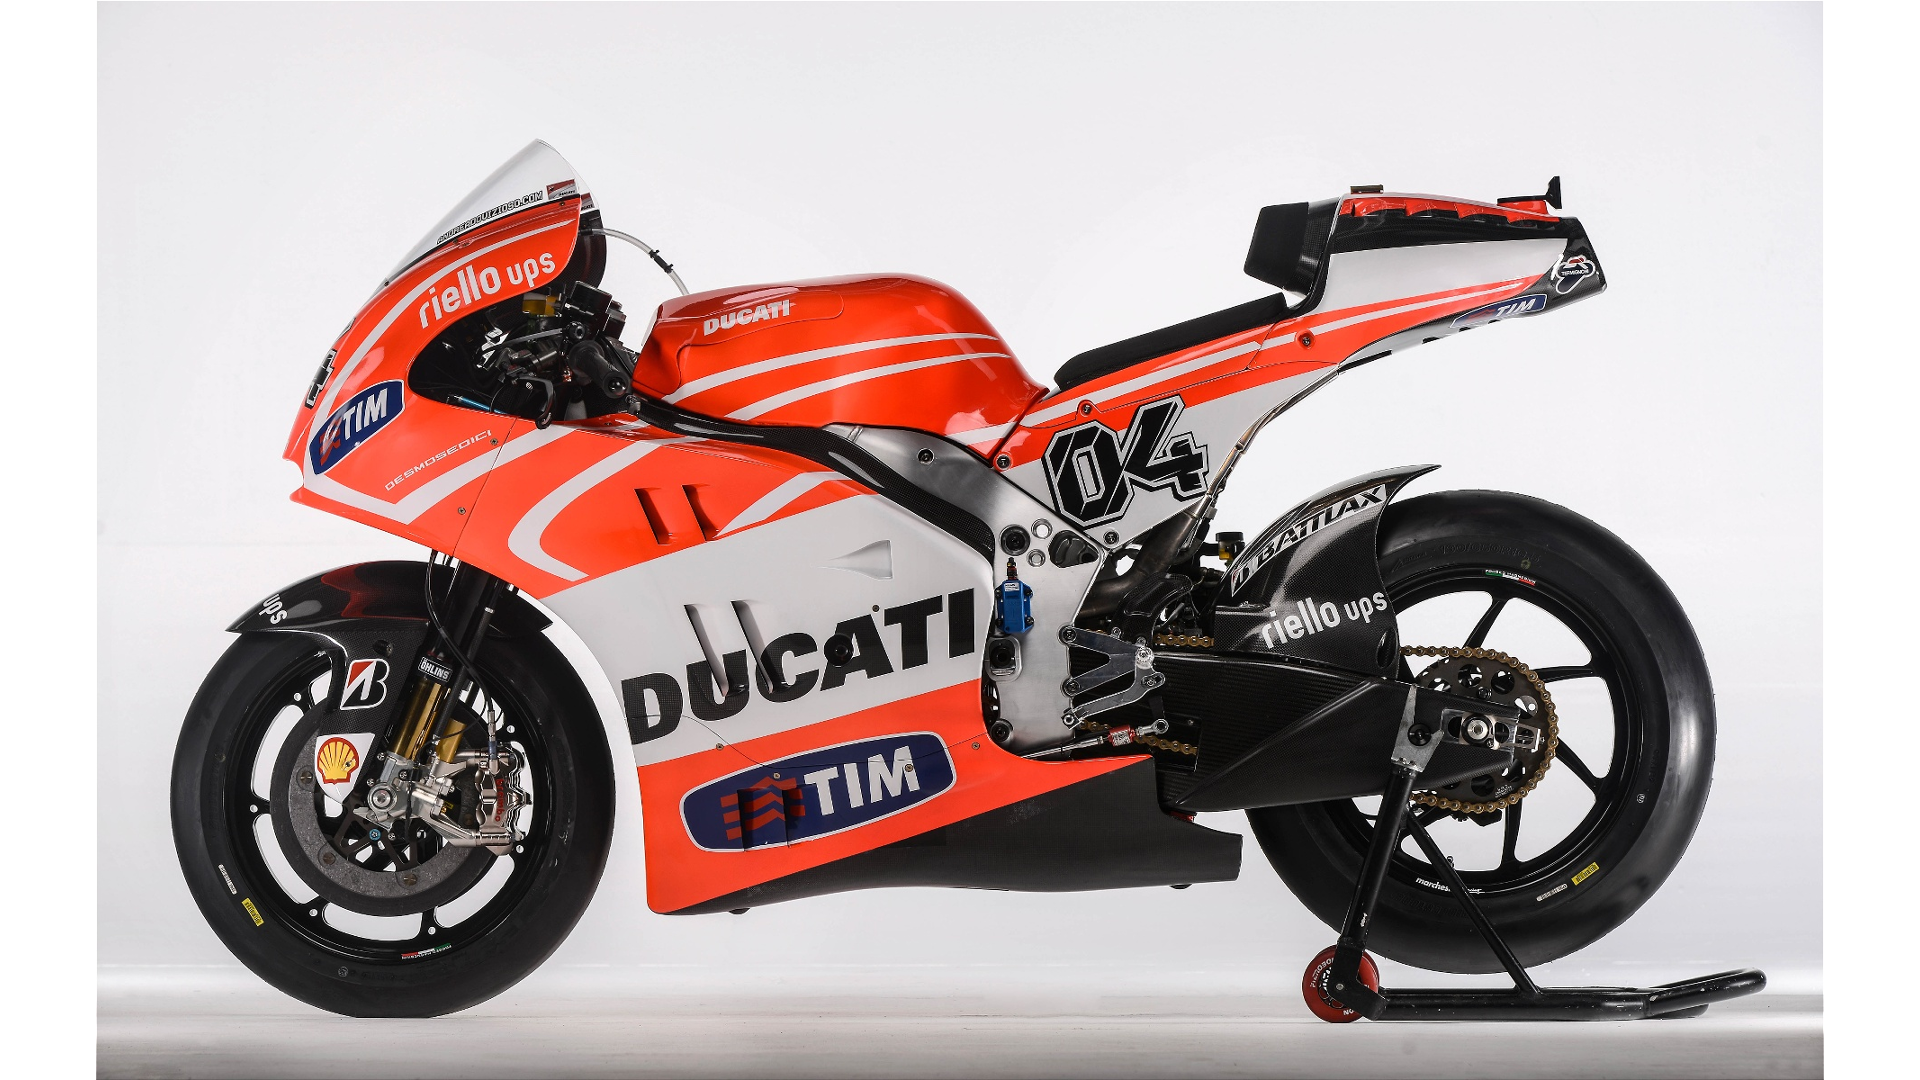 Ducati GP13 - Page 2 Resized_00036951.mediagallery_output_image_%5B1920x1080%5D-O